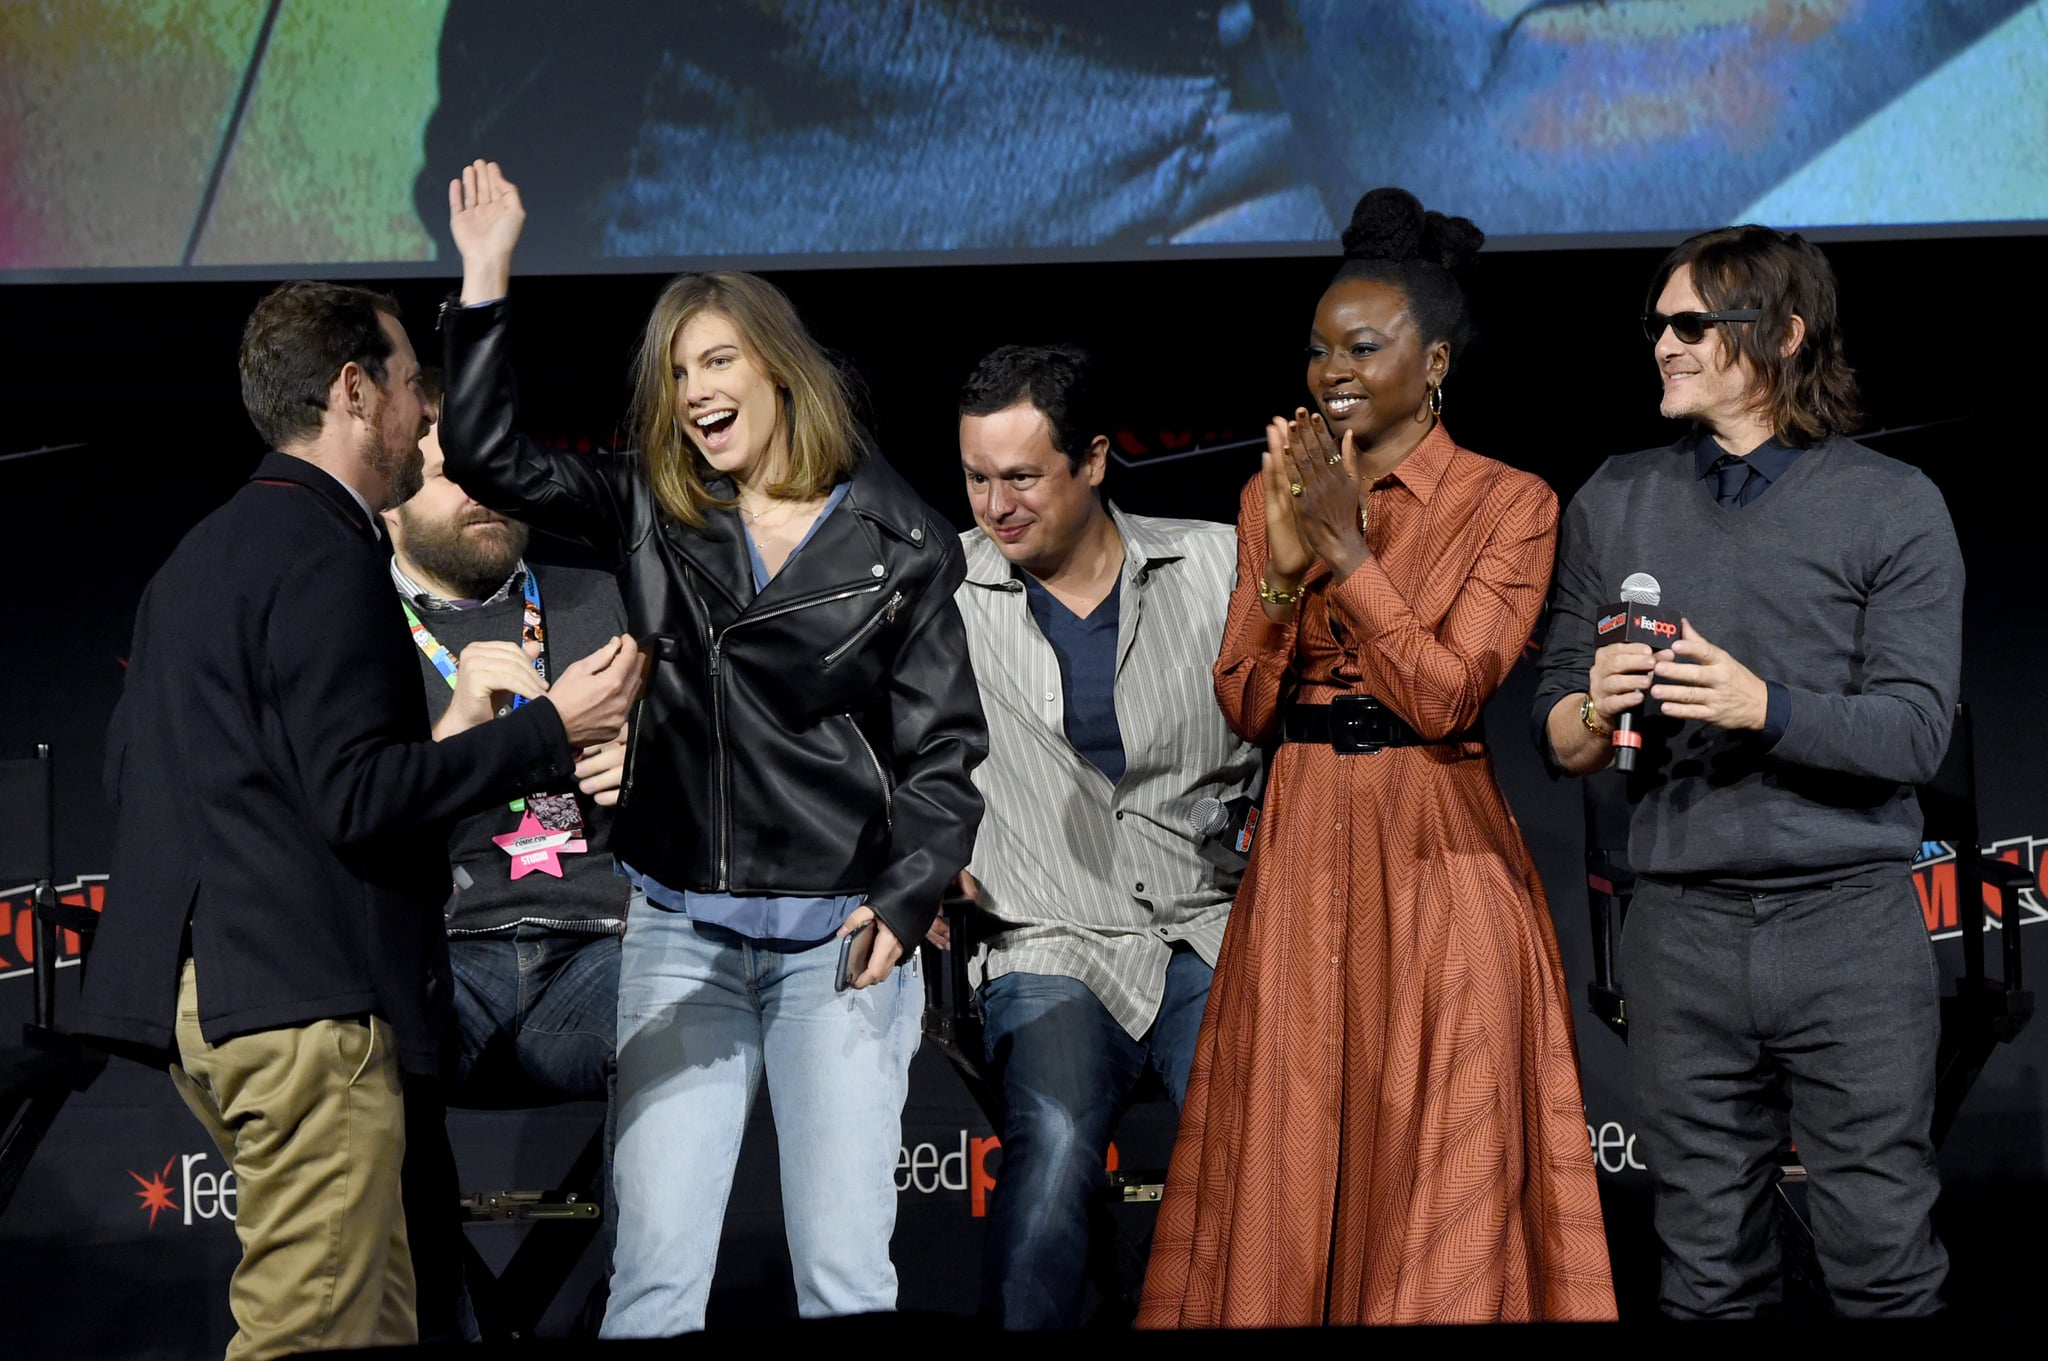 NEW YORK, NEW YORK - OCTOBER 05: (L-R) Scott Gimple, Robert Kirkman, Lauren Cohan, Dave Alpert, Danai Gurira and Norman Reedus speak onstage during a panel for AMC's The Walking Dead Universe including AMC's flagship series and the untitled new third series within The Walking Dead franchise at Hulu Theatre at Madison Square Garden on October 05, 2019 in New York City. (Photo by Jamie McCarthy/Getty Images for AMC)